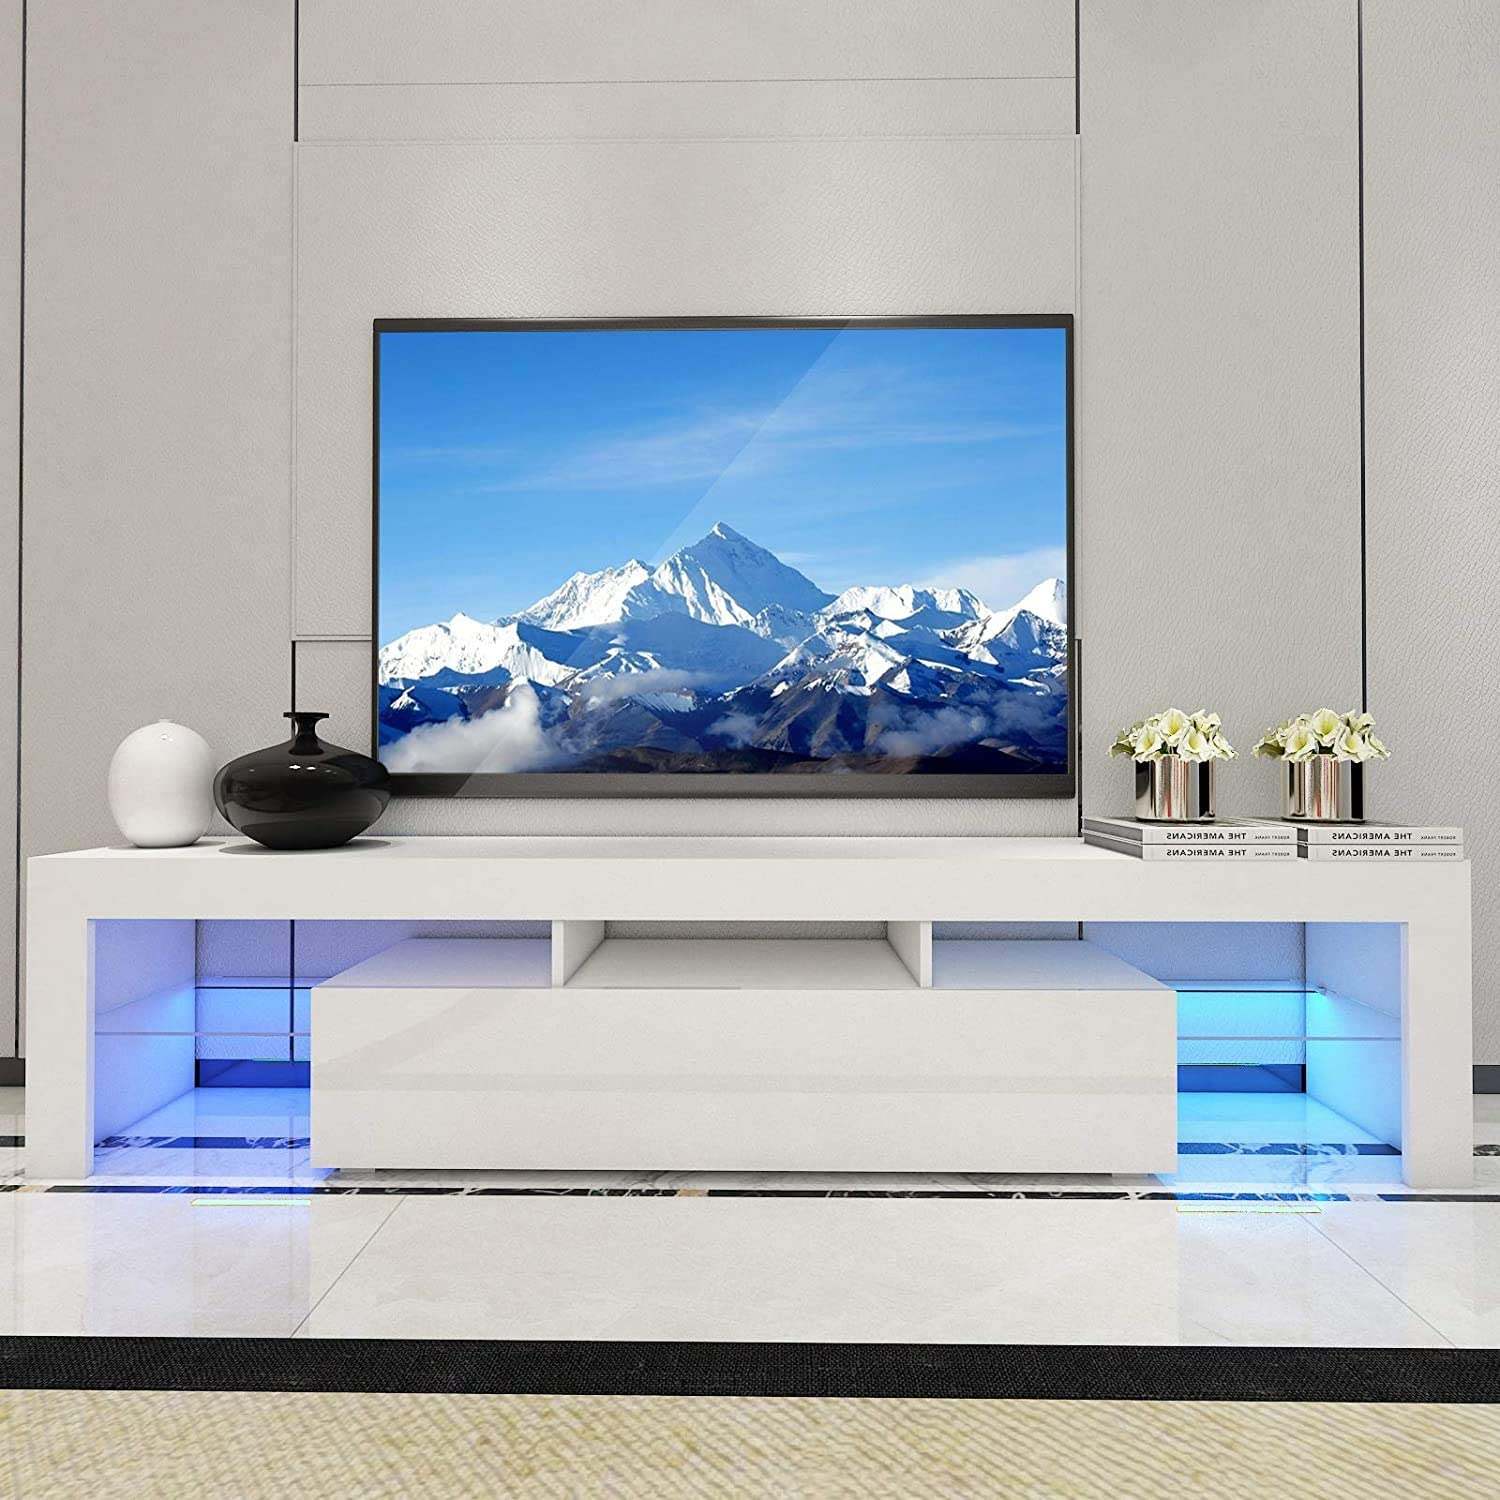 Mtfy Tv Stand With Led Lights 52 Modern Tv Cabinet With Storage Drawer For Living Room Home Furniture Monitor Stand Table White Furniture Decor